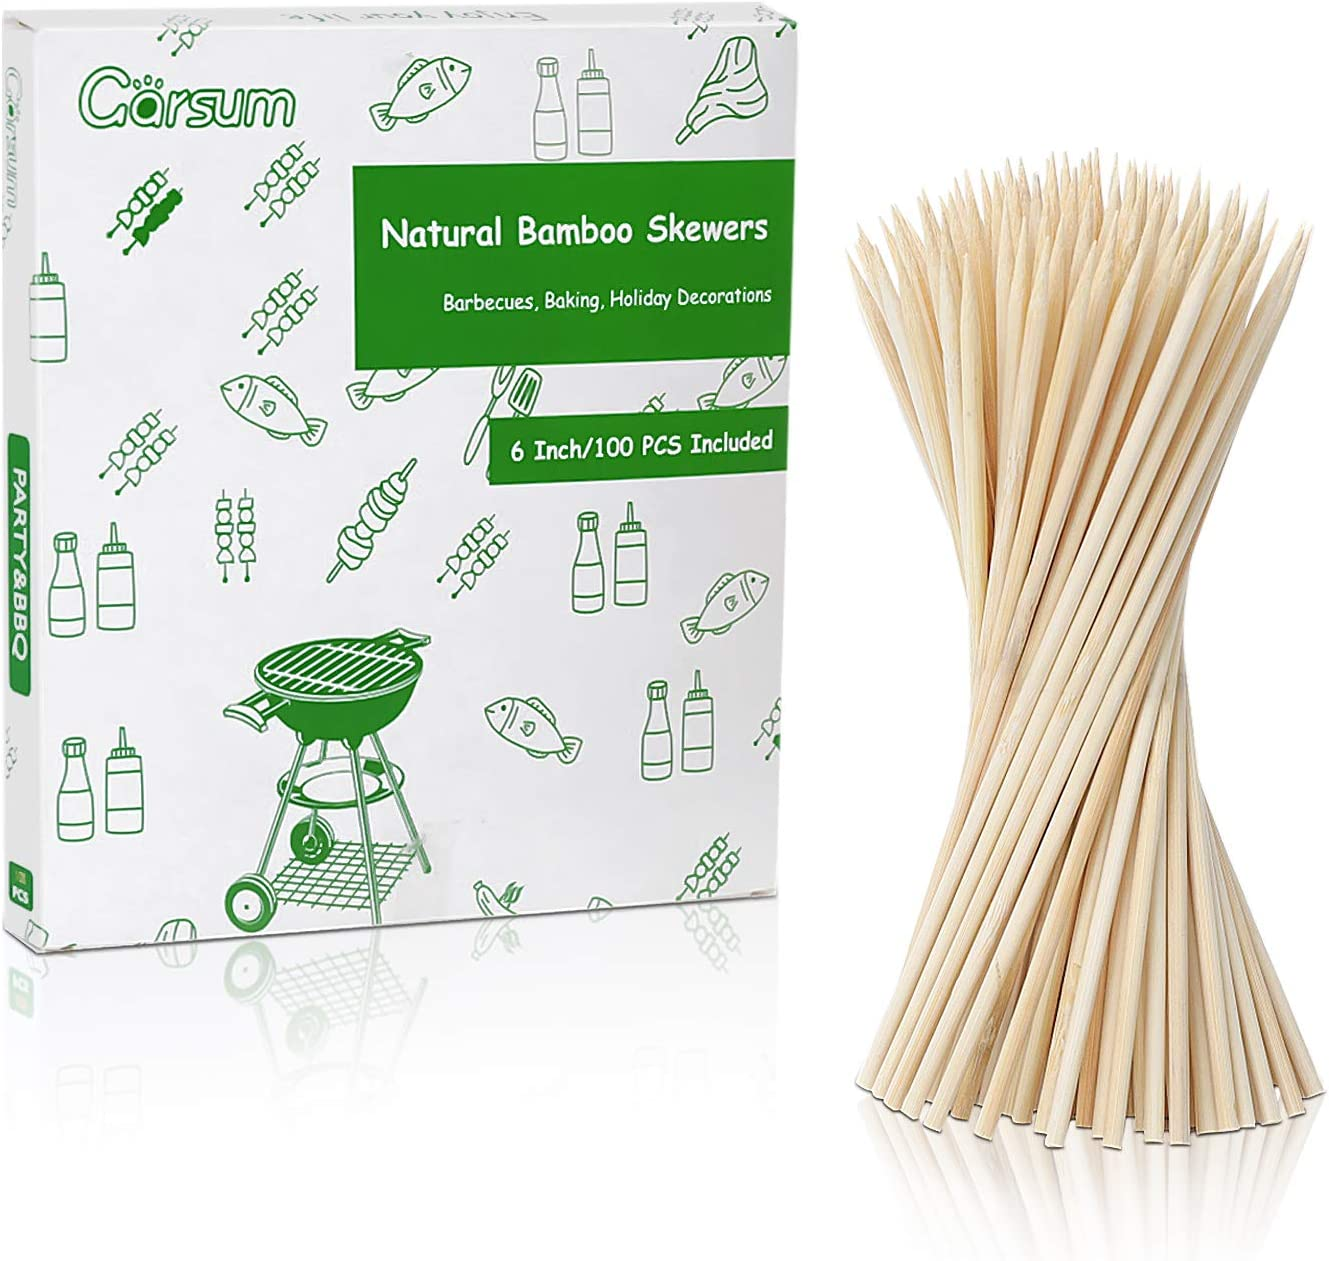 Garsum Natural BBQ Bamboo Skewers, Wooden Skewers for Assorted Fruits, Kebabs, Grill, Highly Renewable Natural Resources, Suitable for Kitchen, Party, Food Catering and Crafting 6